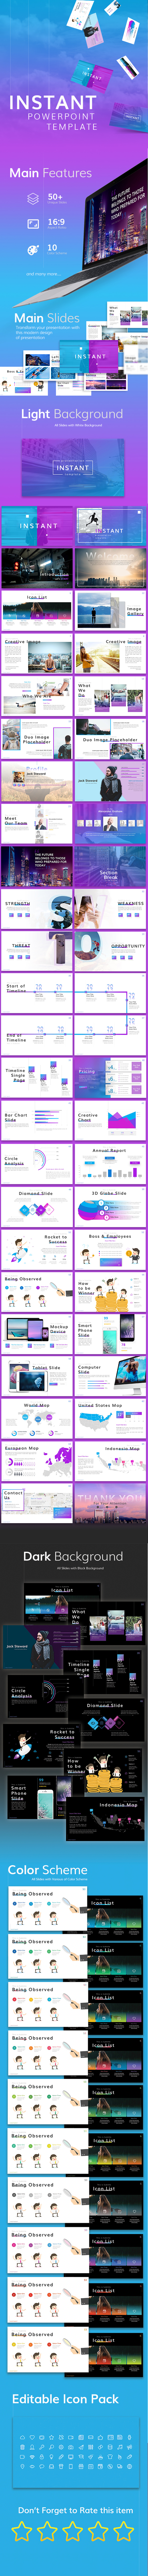 Instant Powerpoint Template - Business PowerPoint Templates